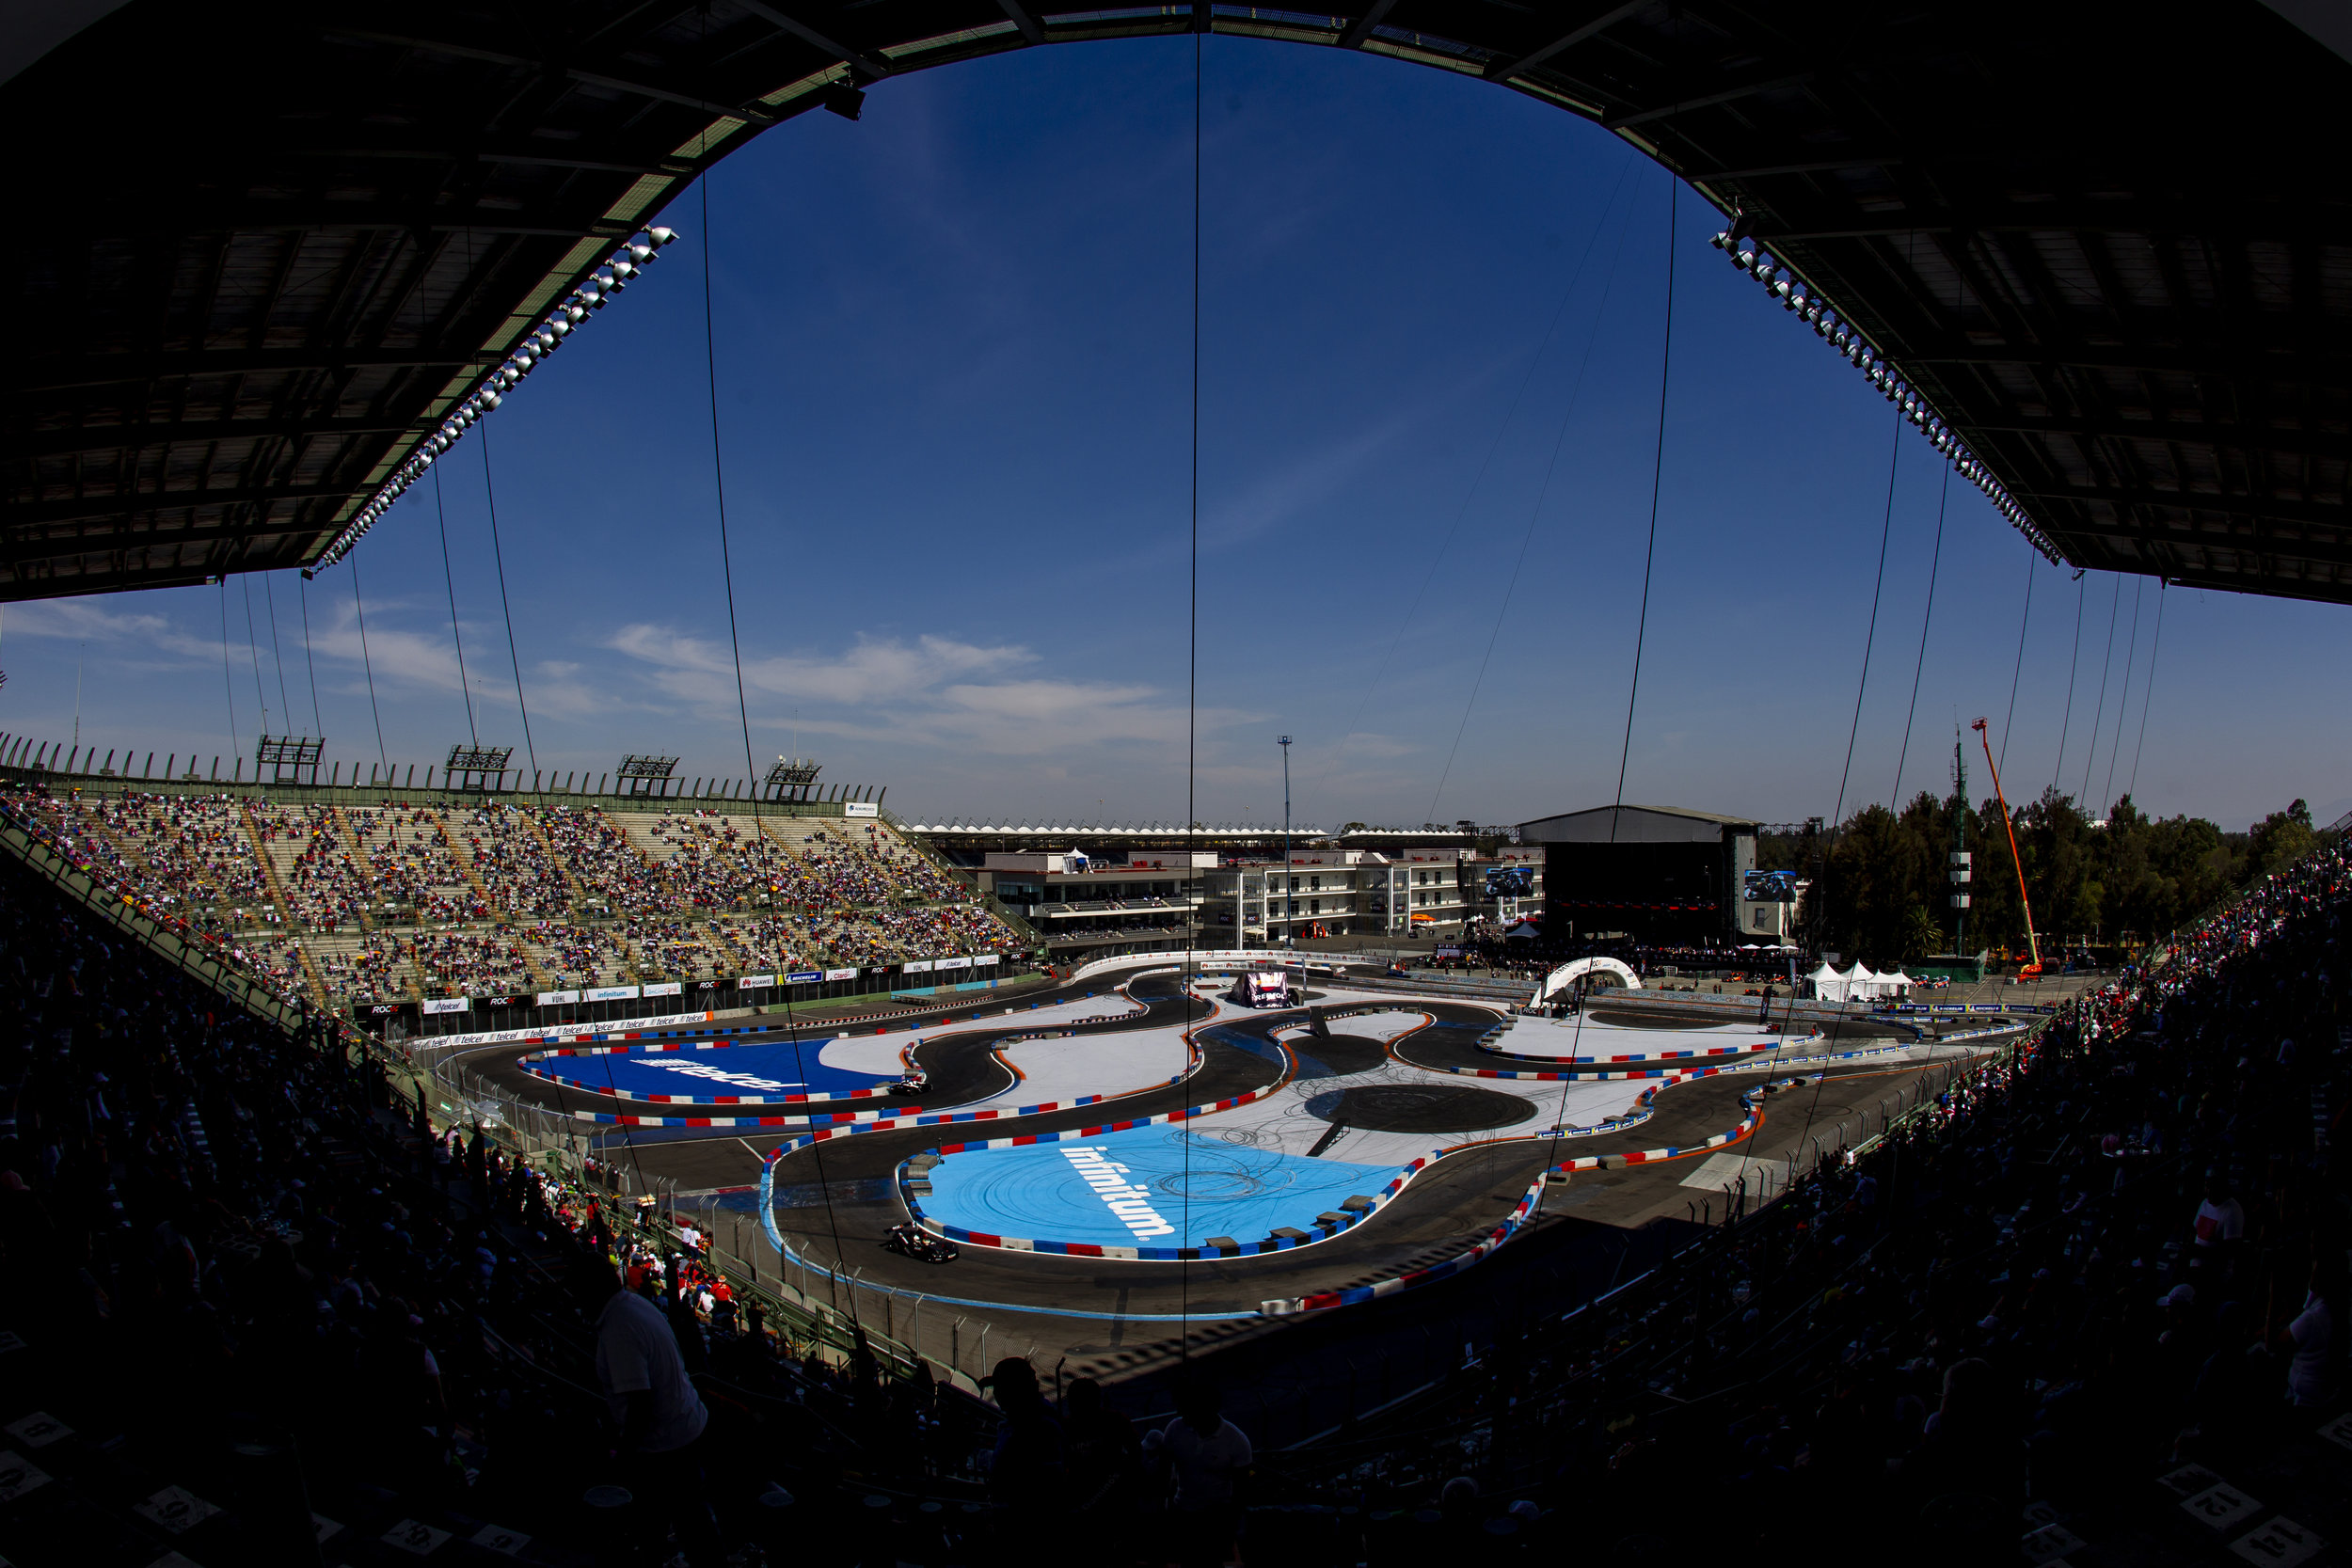 A view of the Foro Sol Stadium in Mexico City, Mexico, the host circuit of Race of Champions (image courtesy of ROC).